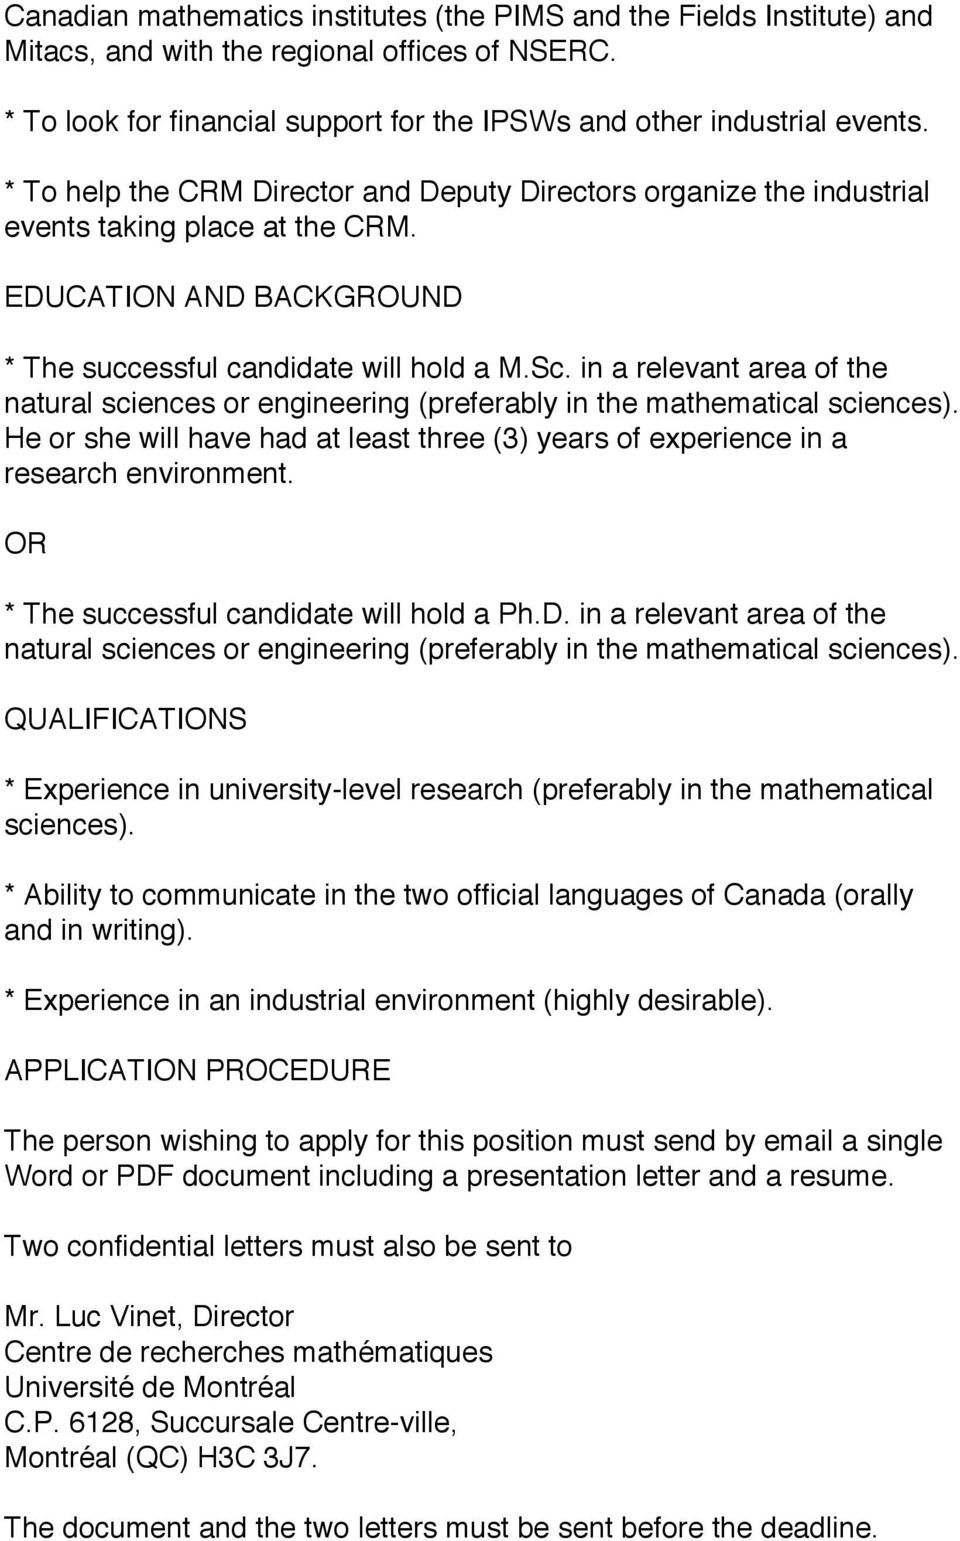 in a relevant area of the natural sciences or engineering (preferably in the mathematical sciences). He or she will have had at least three (3) years of experience in a research environment.